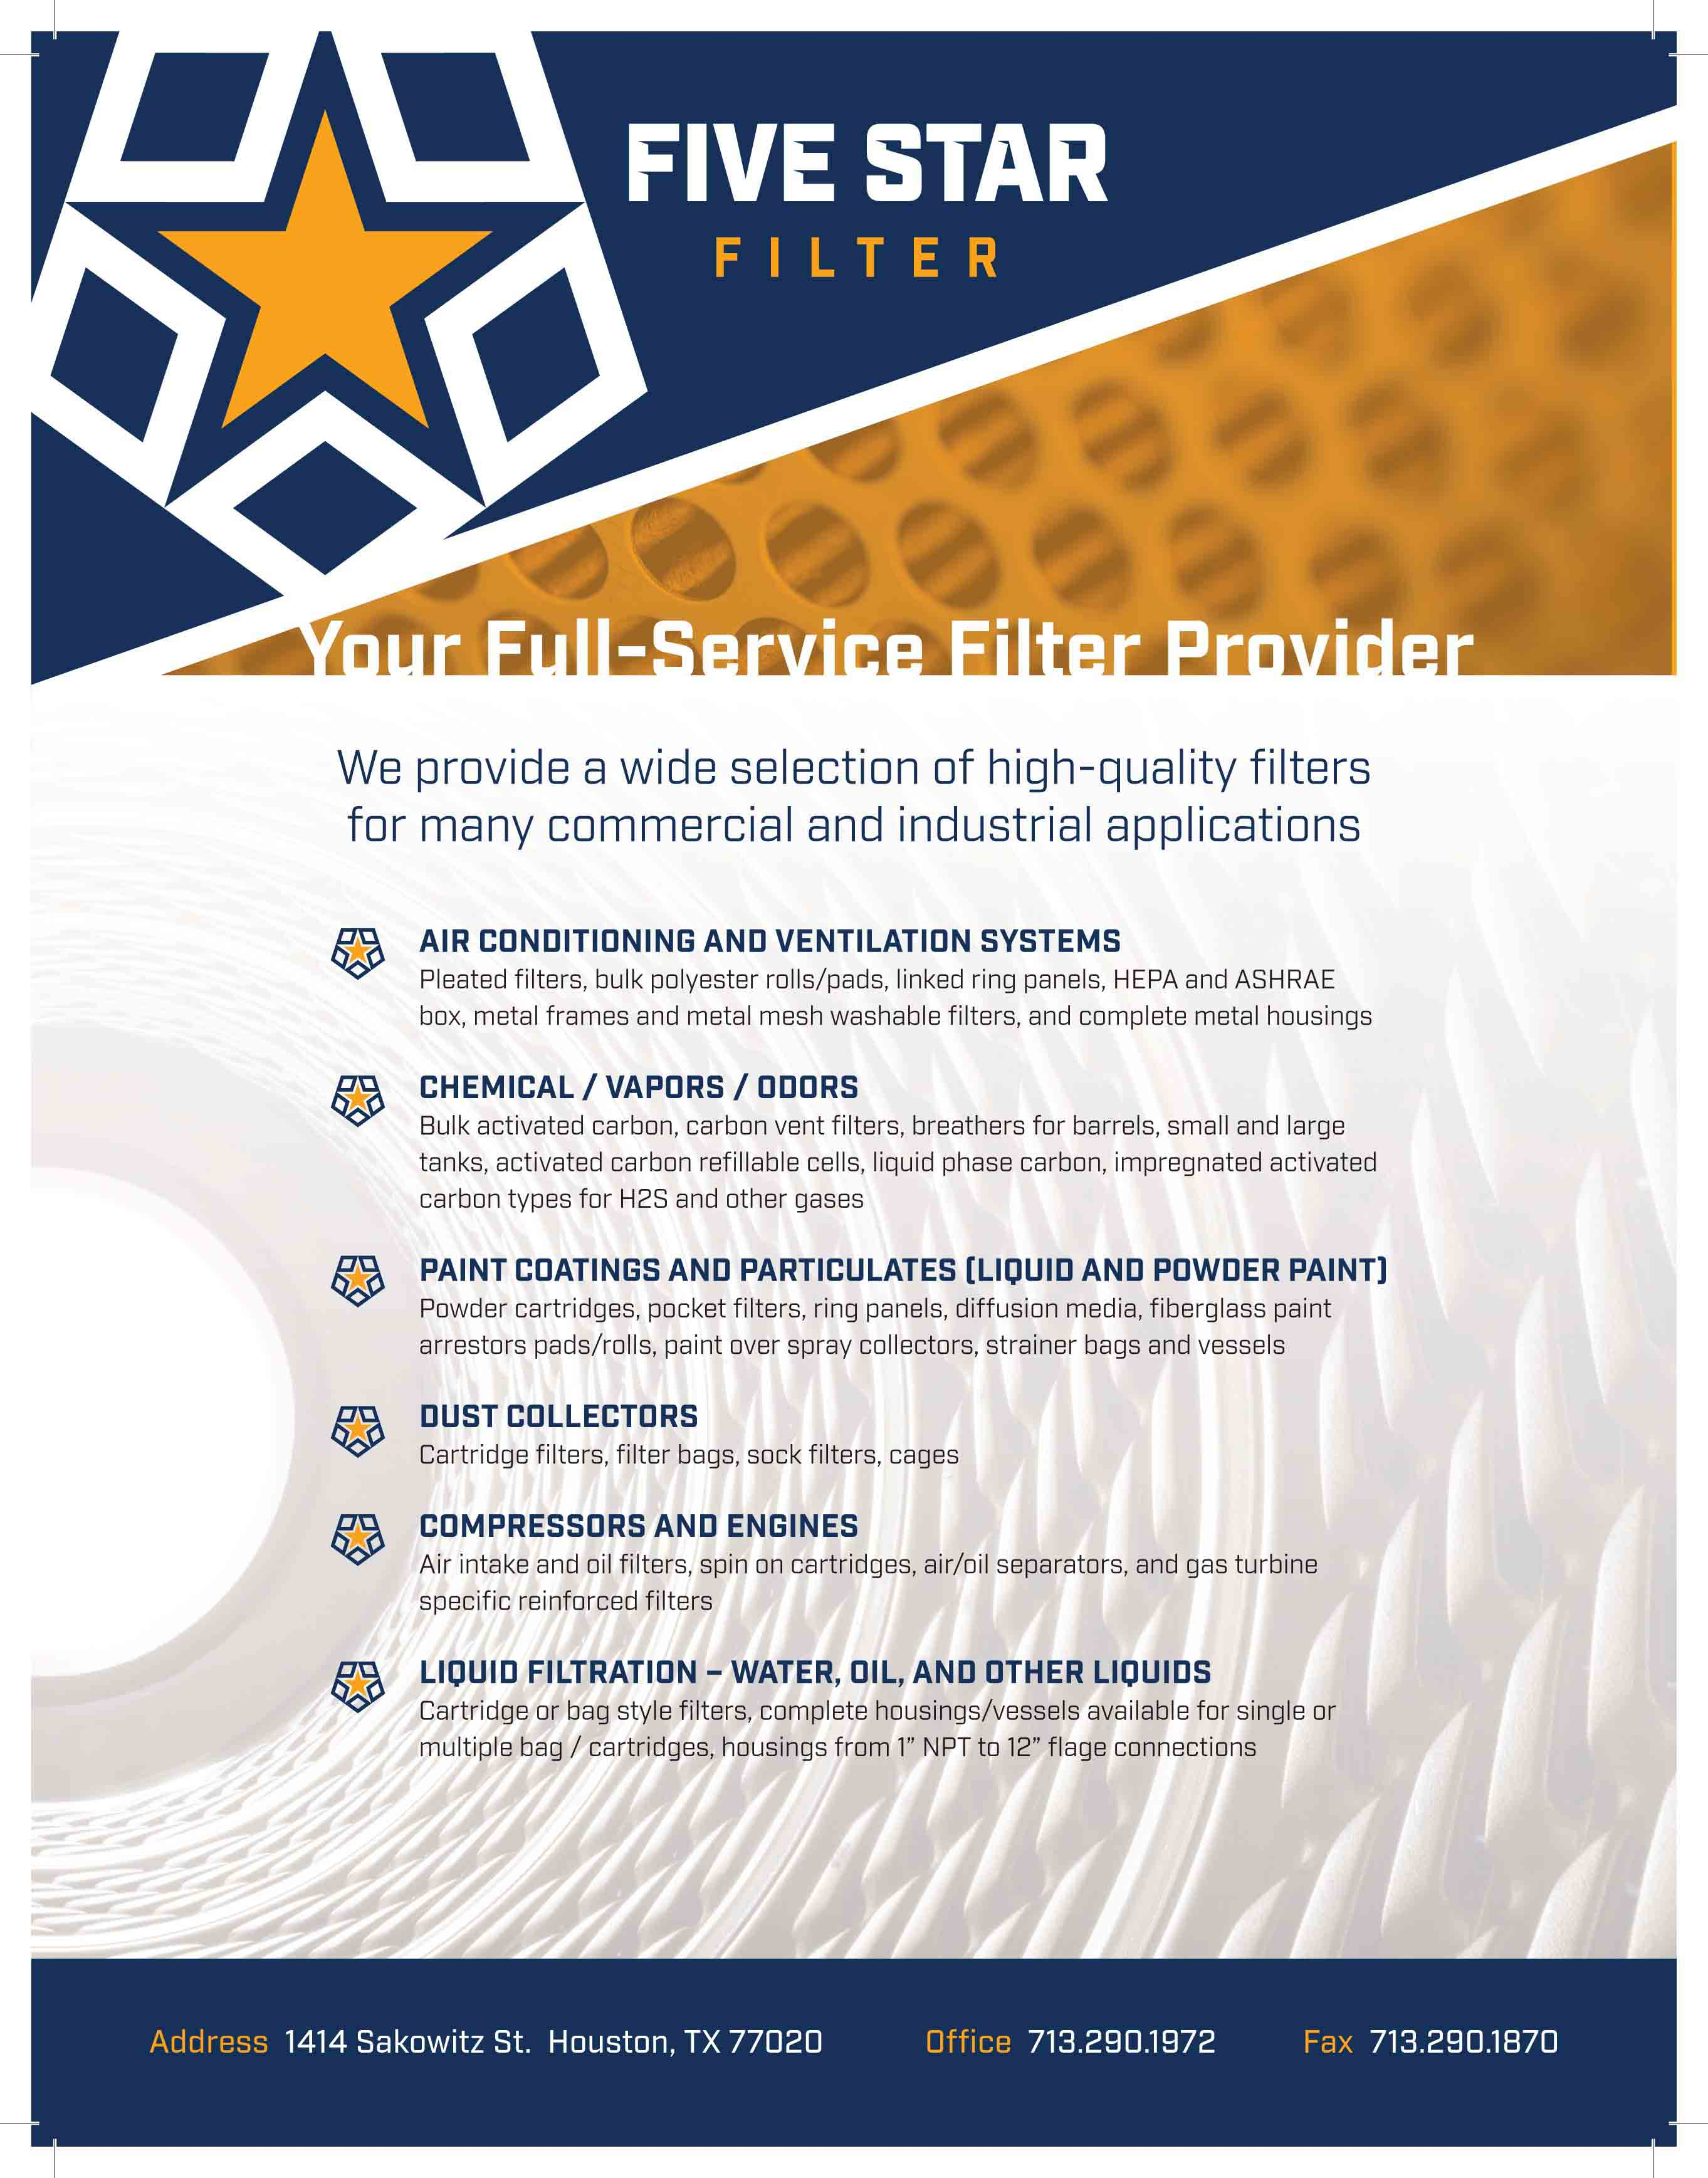 5 Star Filter - Business - Local Catholic Business